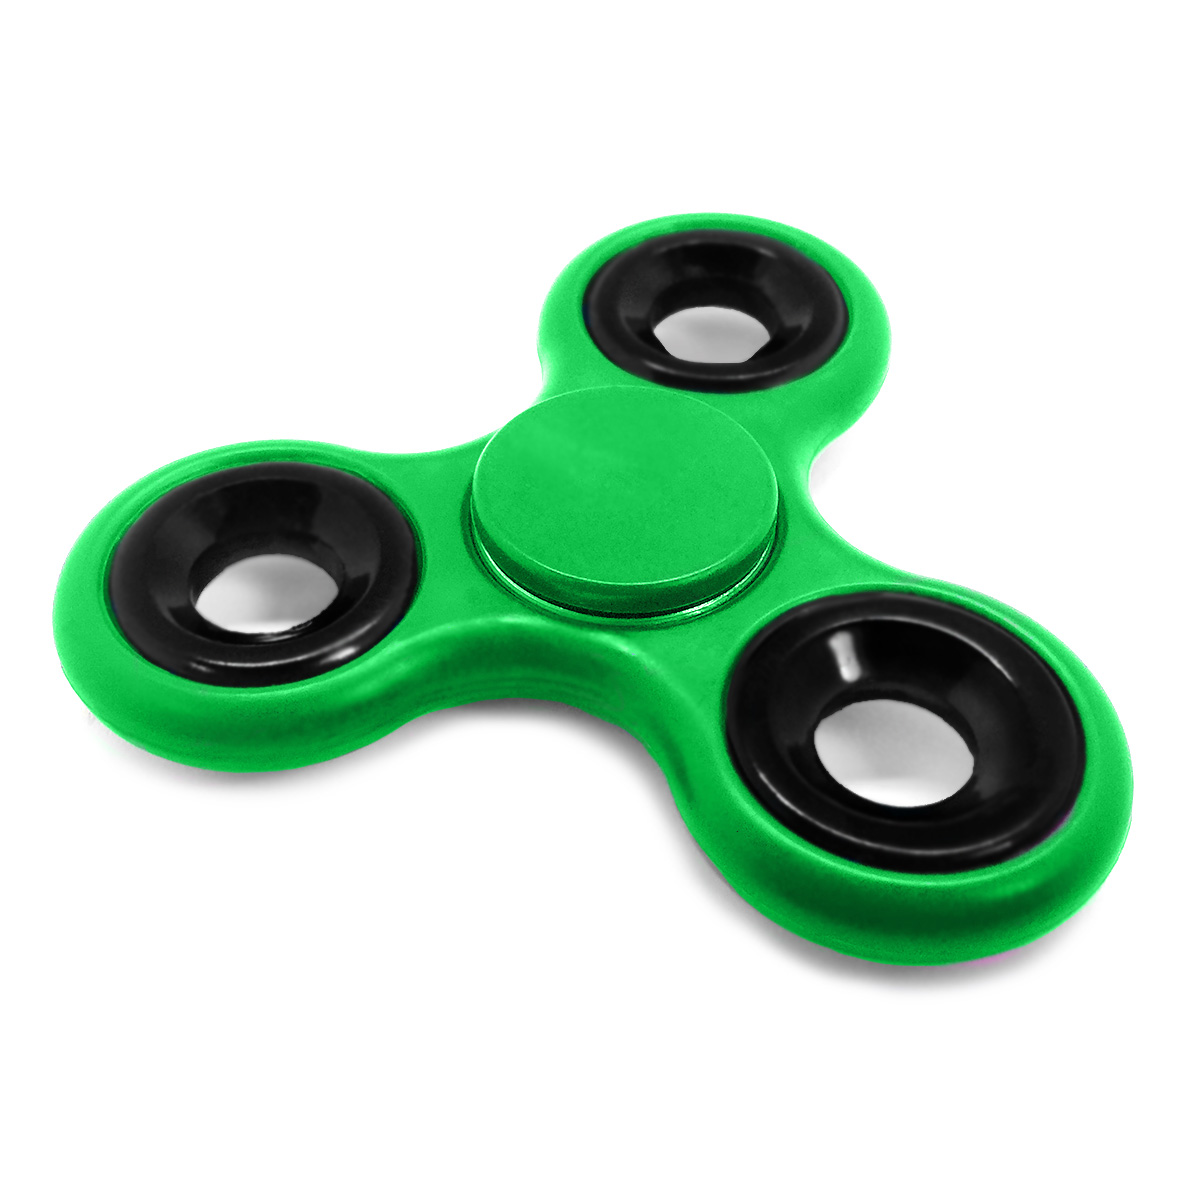 IN Spinner Green Original Fidget Spinner